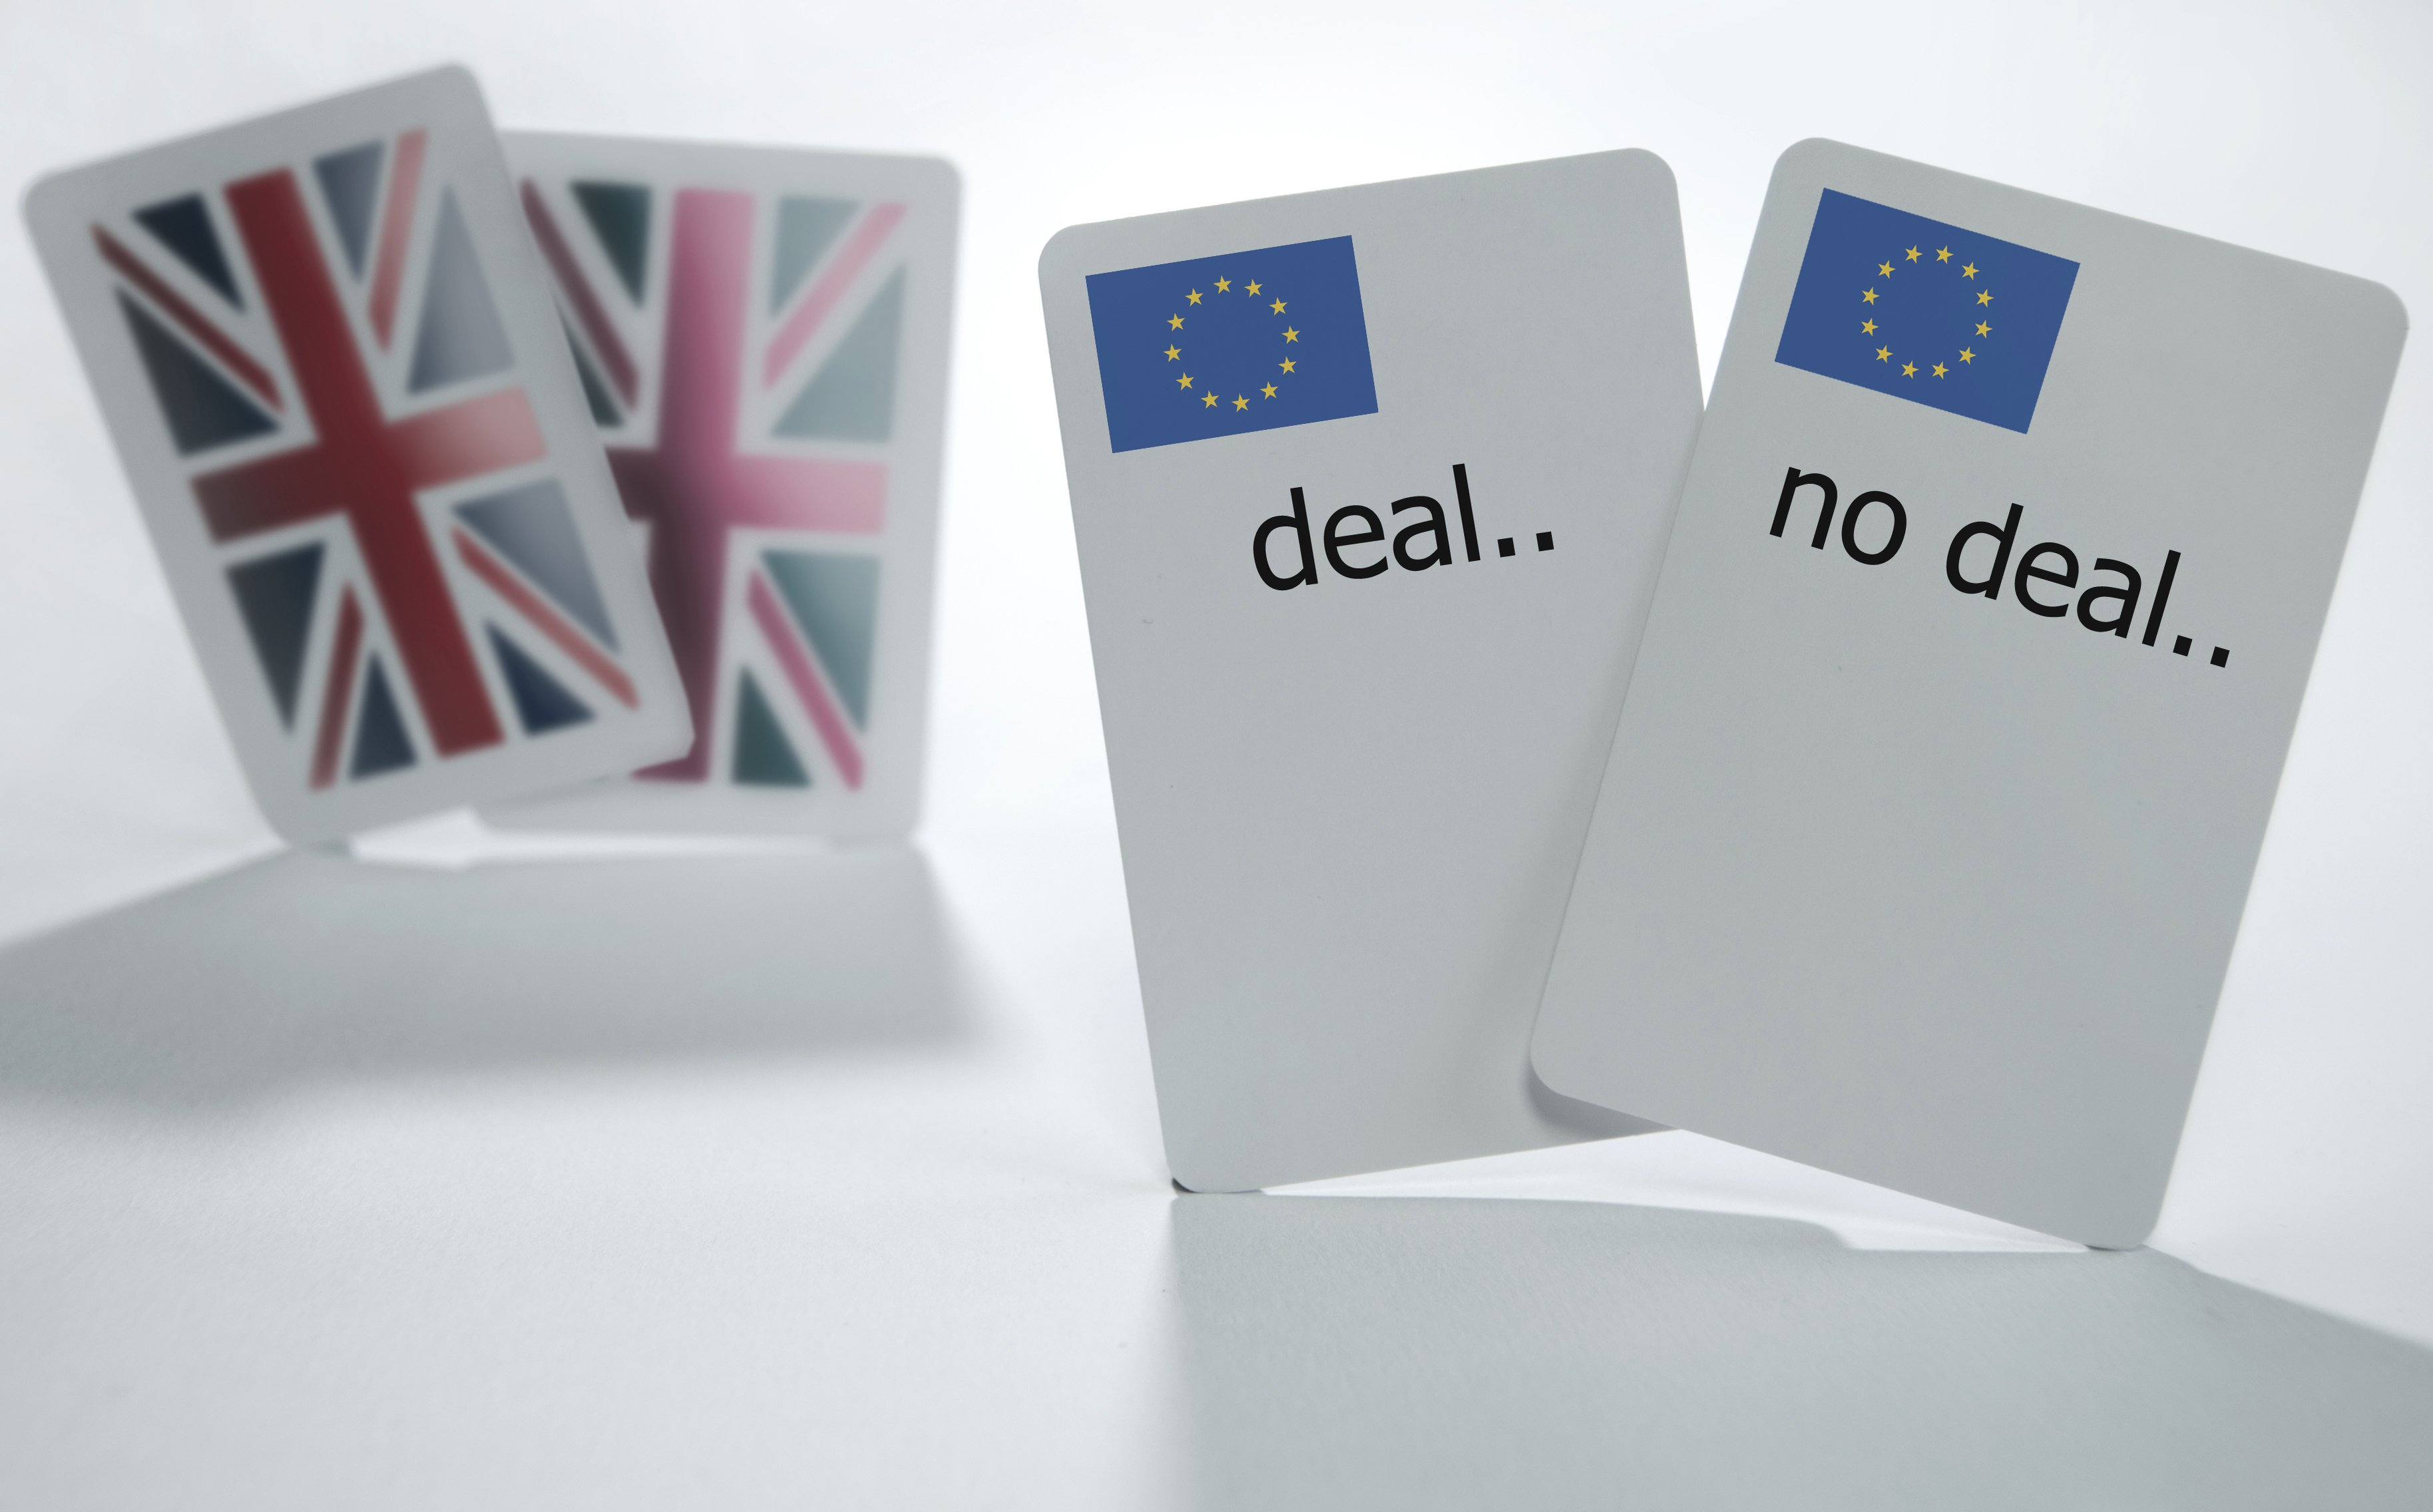 Brexit: What do the EU's 'no deal' preparations say?